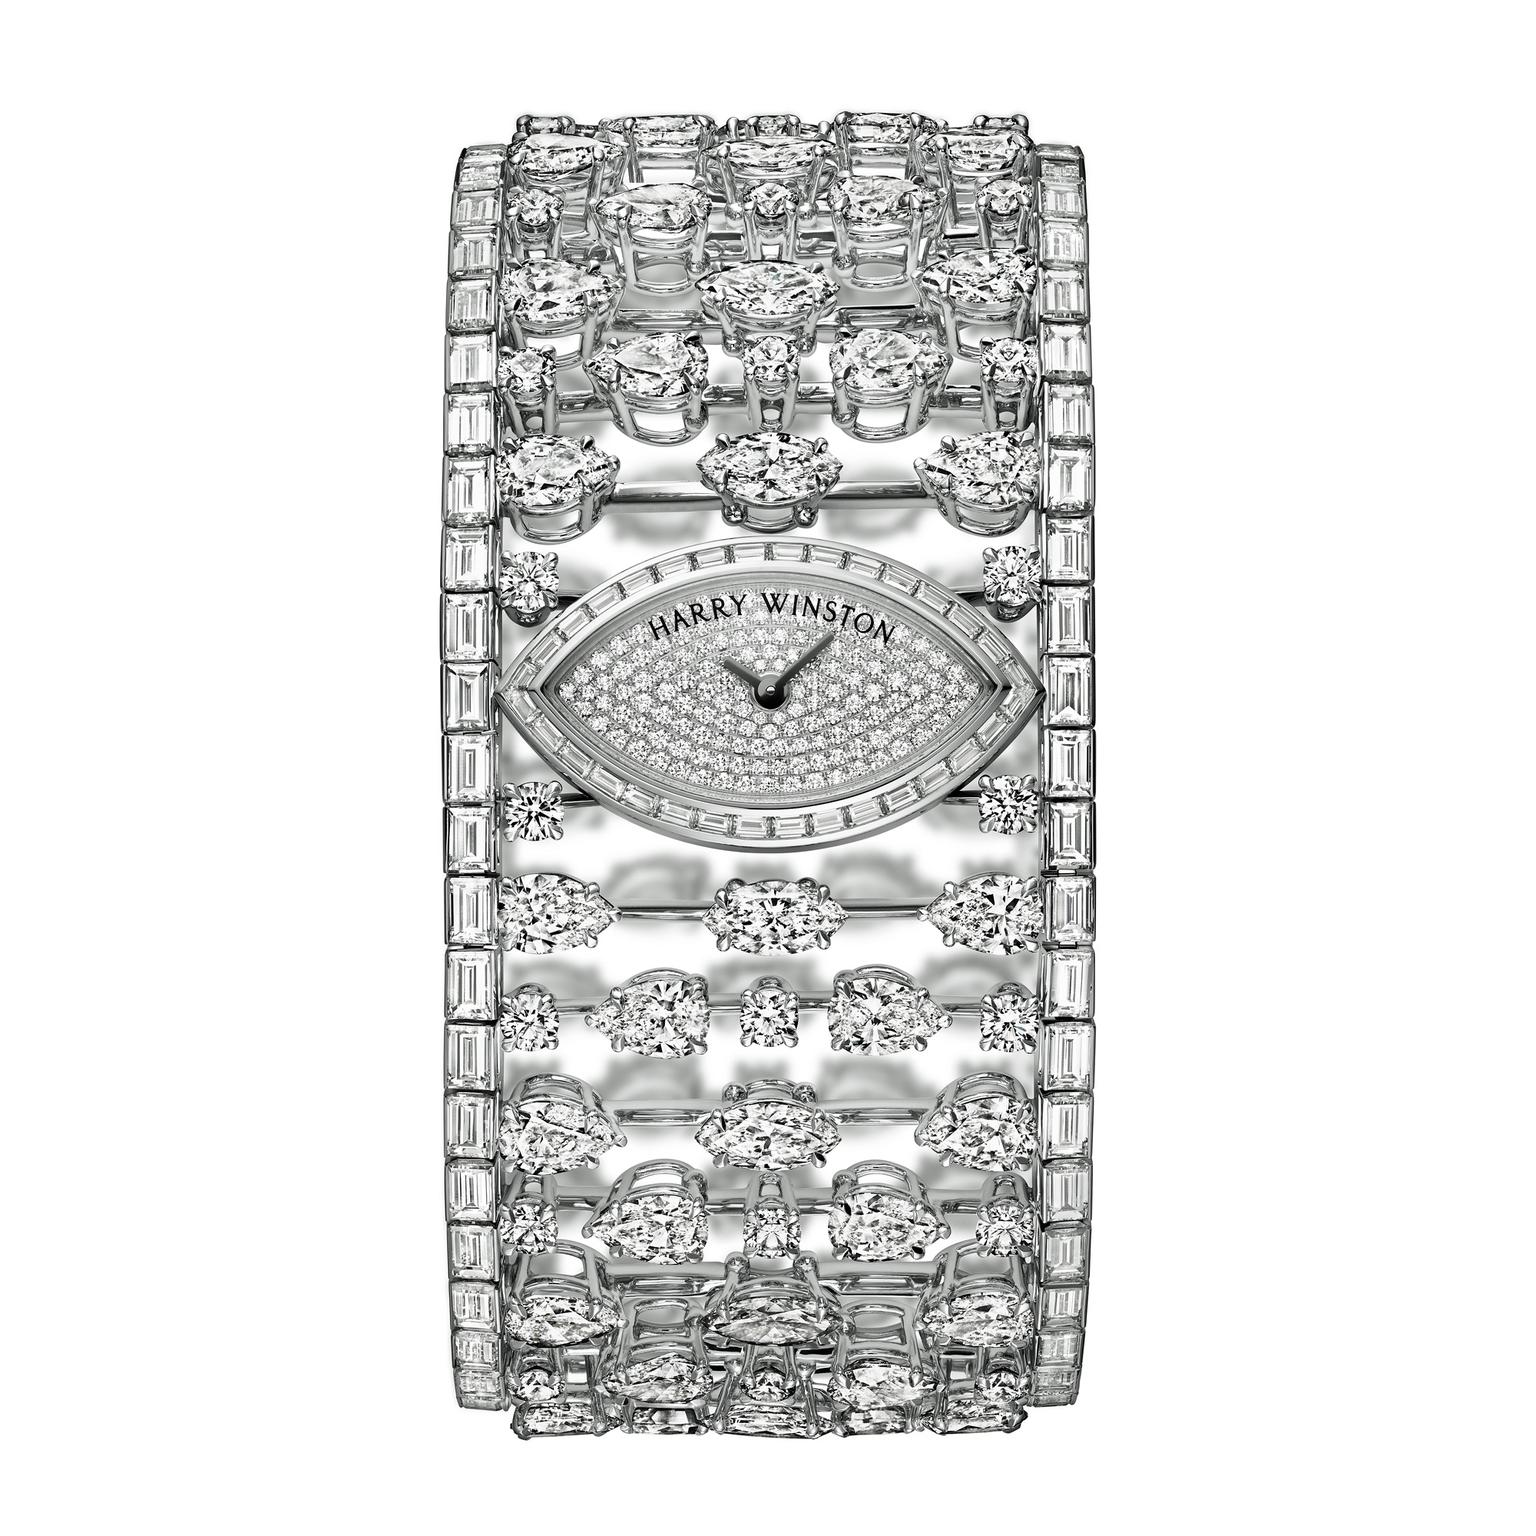 Harry Winston Mrs Winston watch